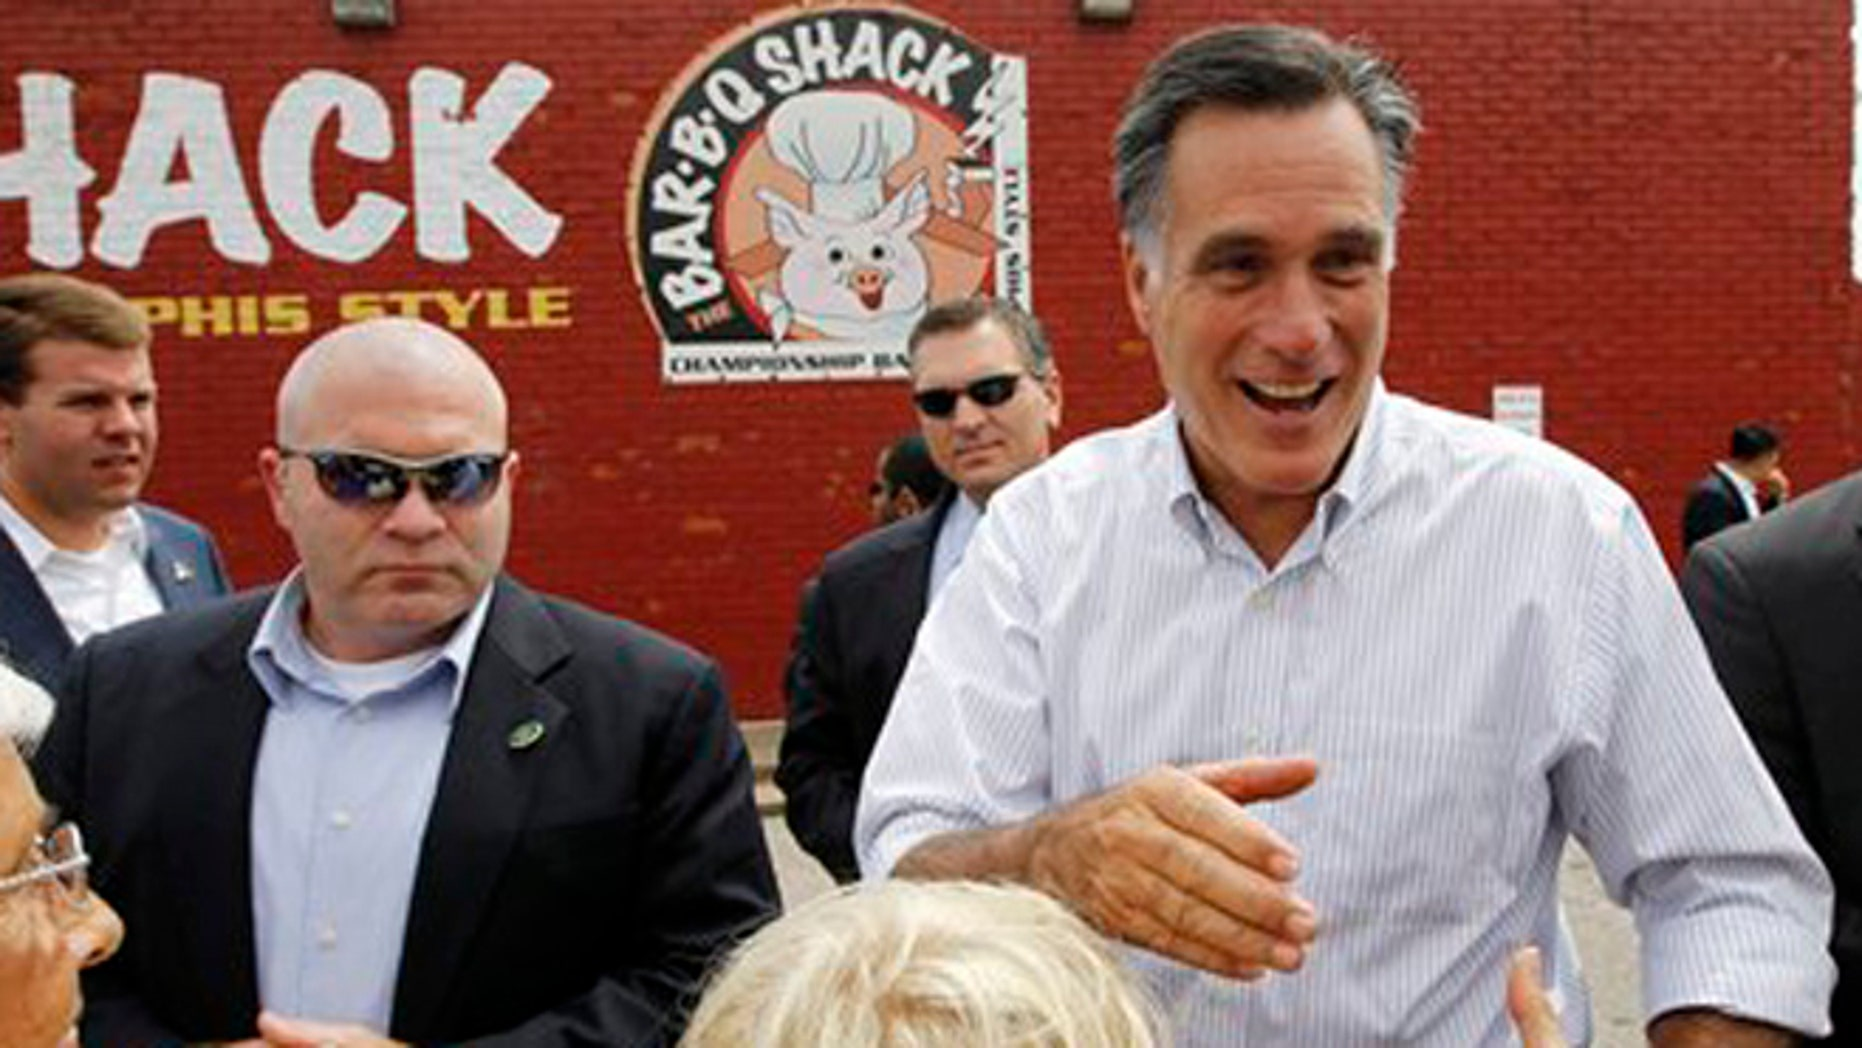 Aug. 4, 2012: Republican presidential candidate Mitt Romney campaigns at Stepto's BBQ Shack in Evansville, Ind.